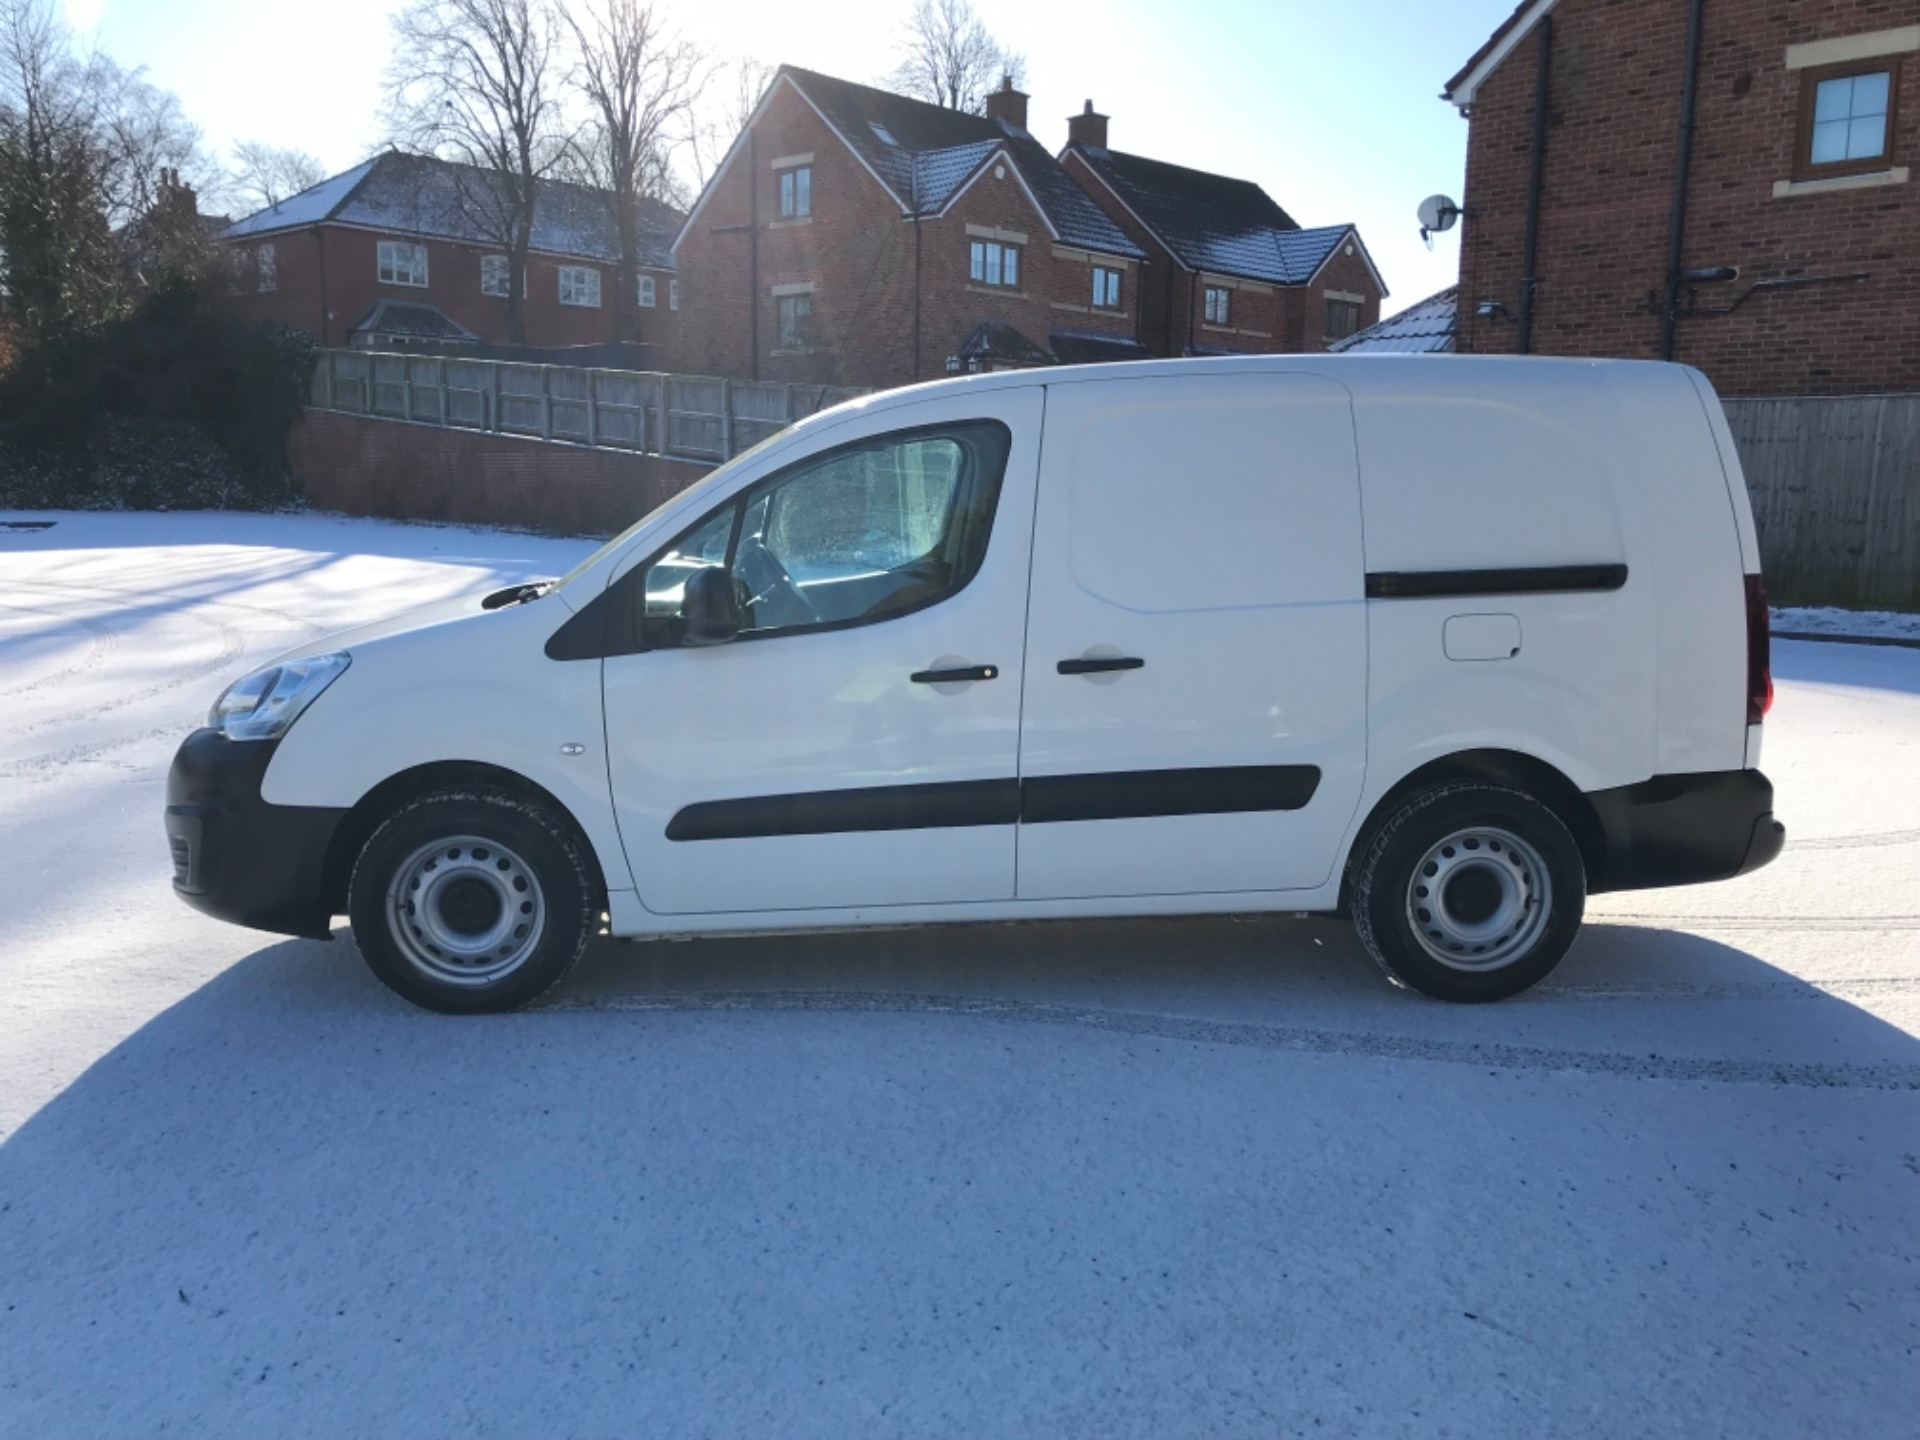 2017 Peugeot Partner L2 715 S 1.6 Bluehdi 100 Crew Van Euro 6  *70 MPH SPEED RESTRICTED (NV17NYM) Image 4